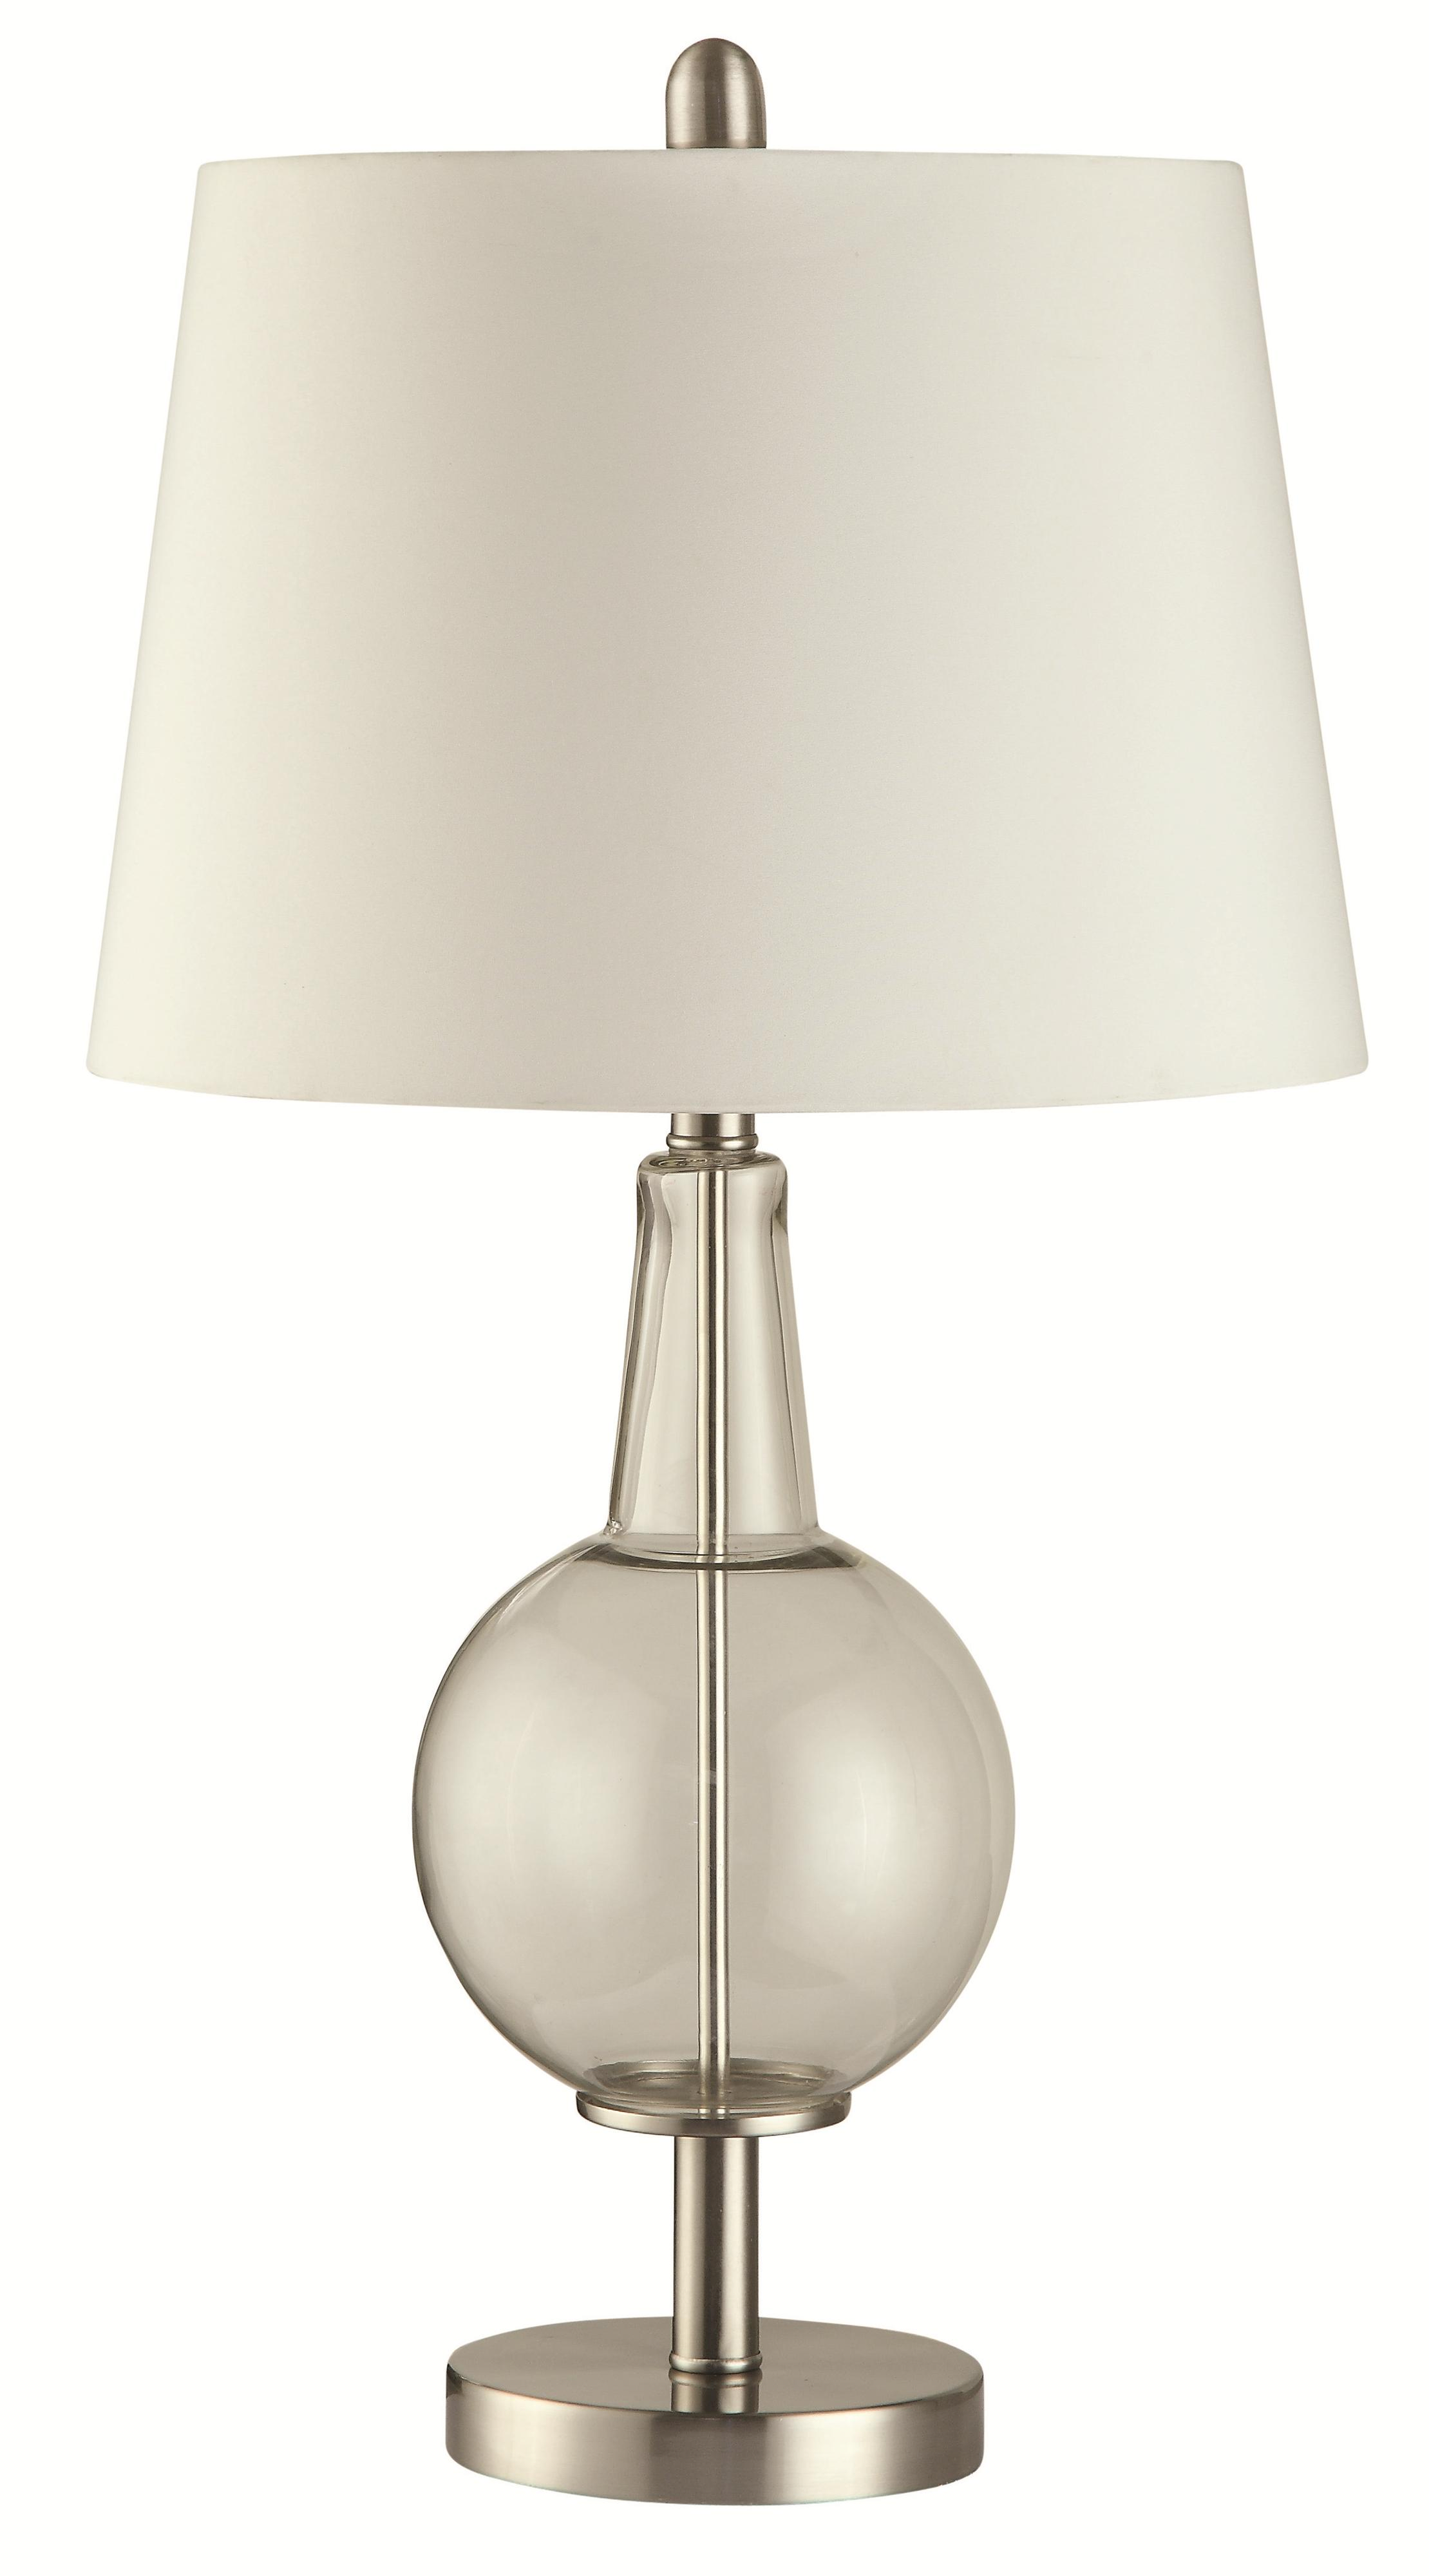 Coaster Table Lamps Table Lamp - Item Number: 901519